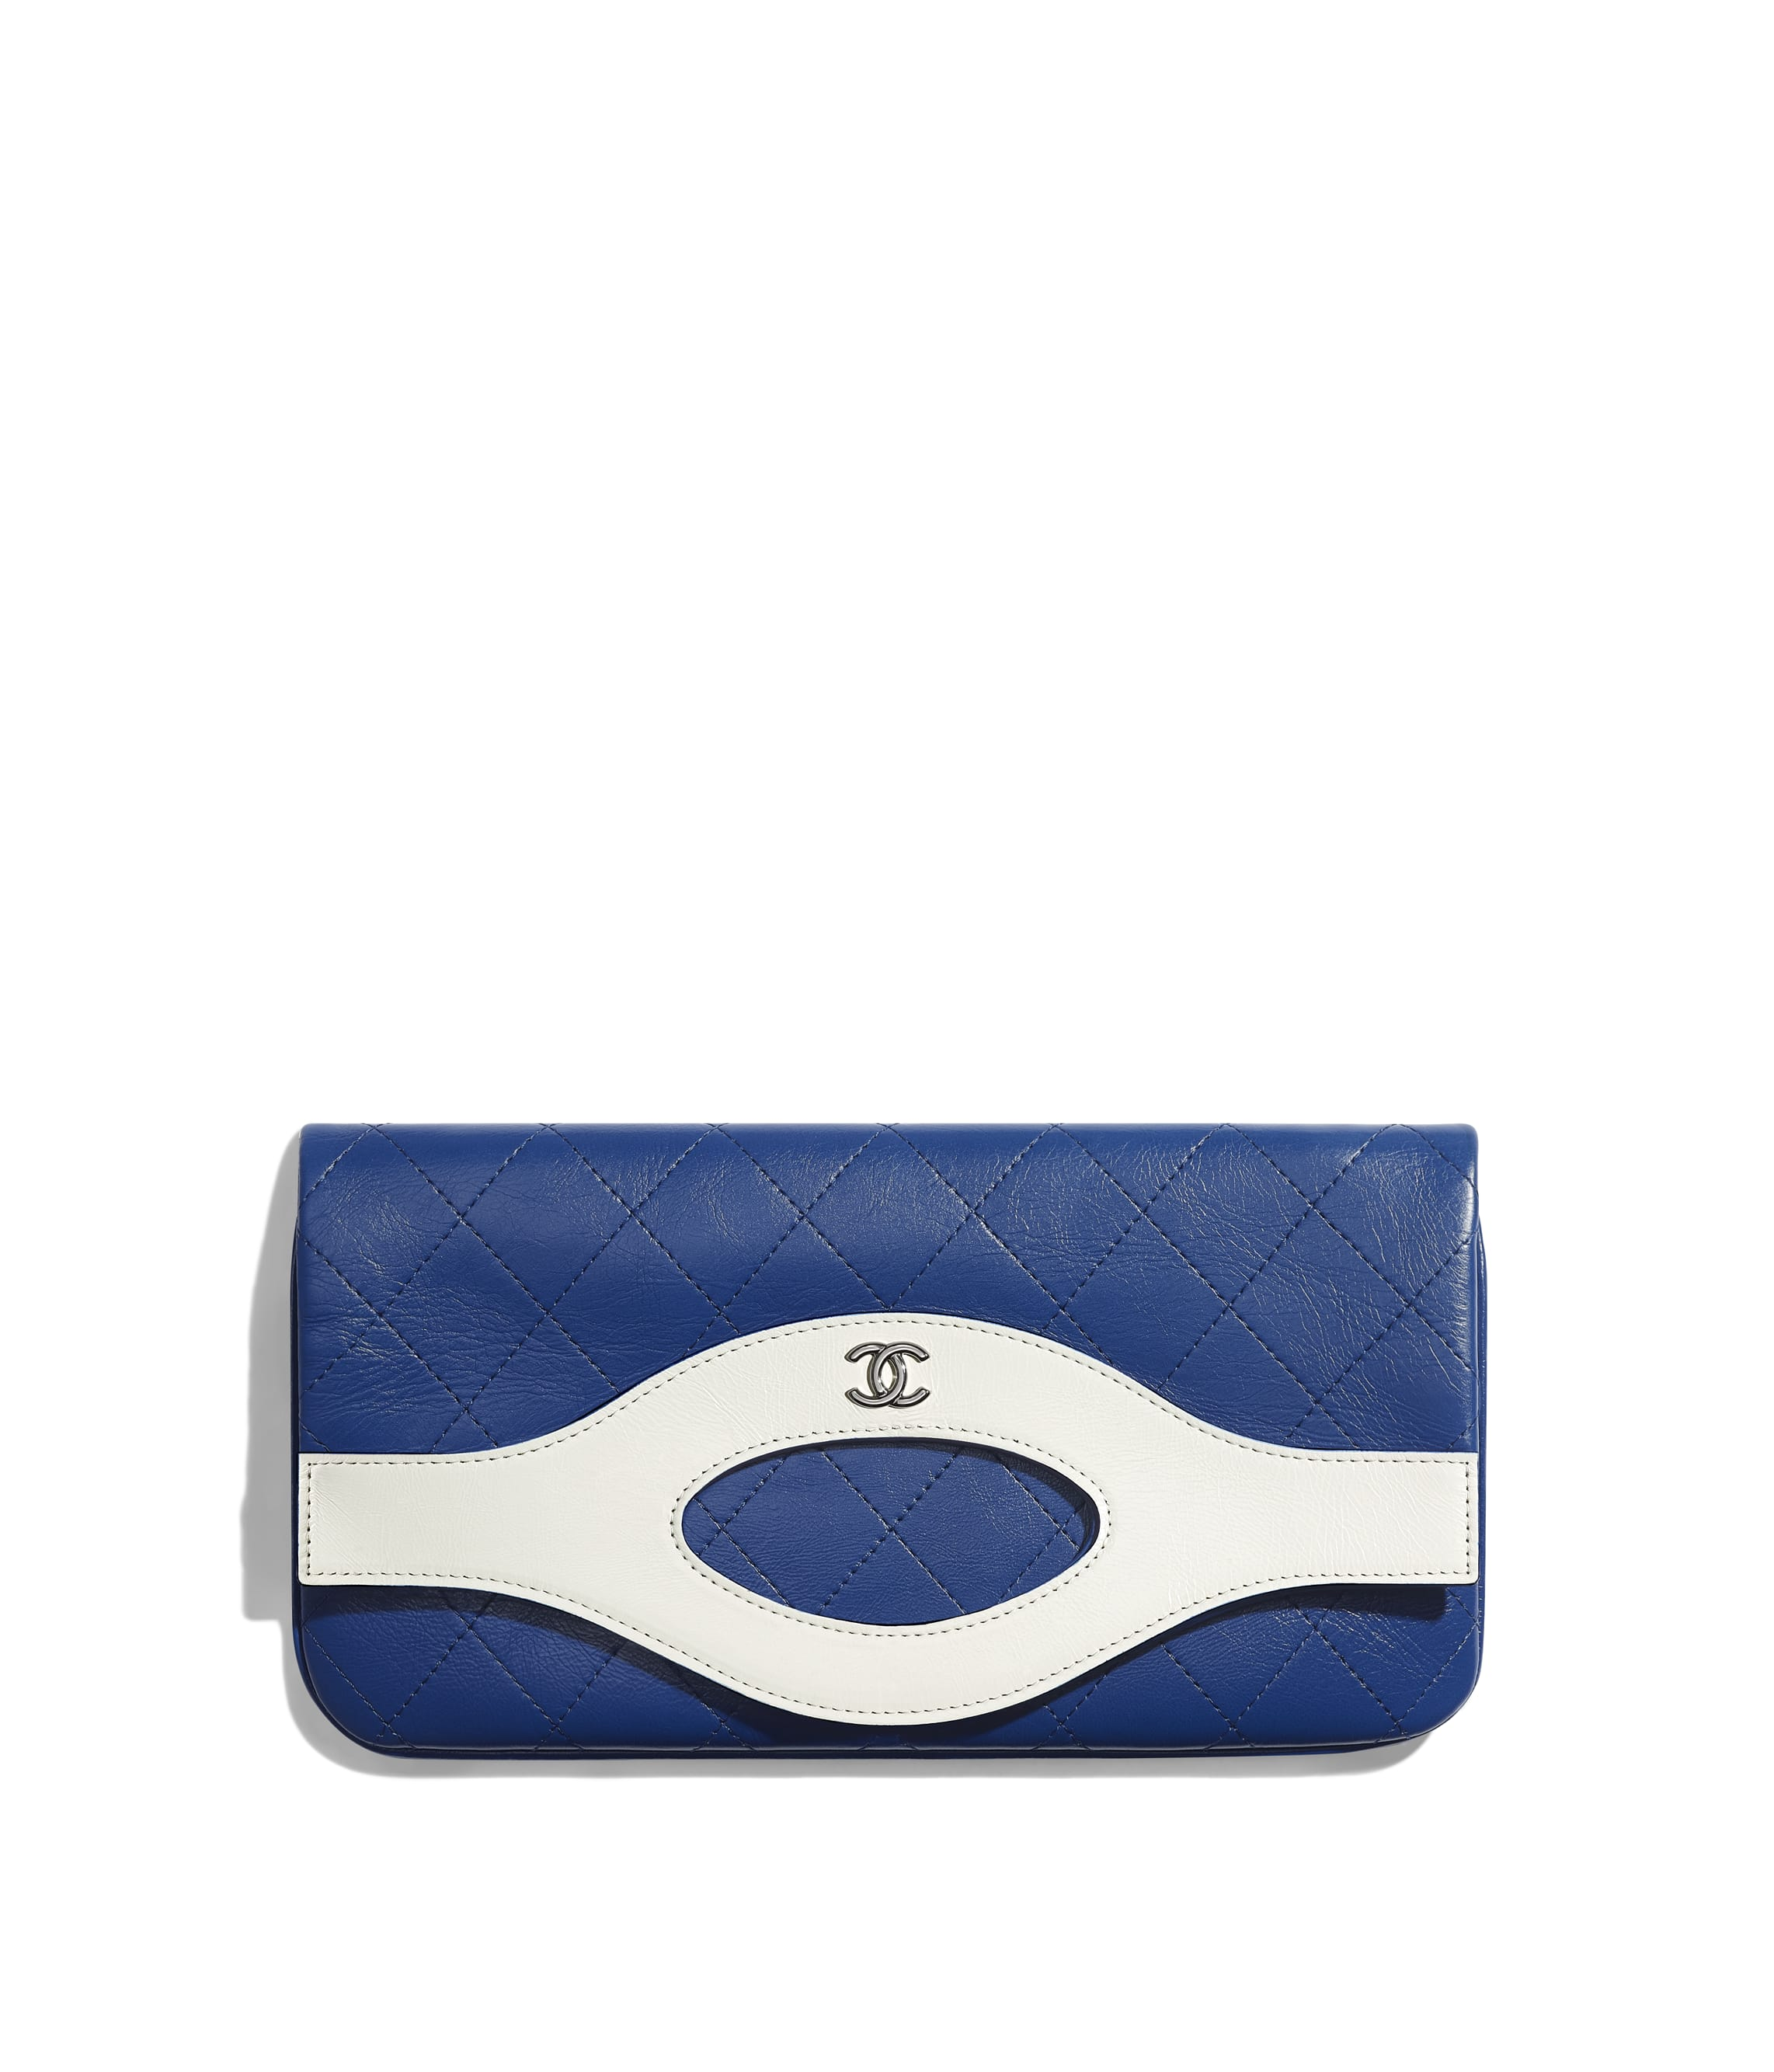 CHANEL 31 Pouch